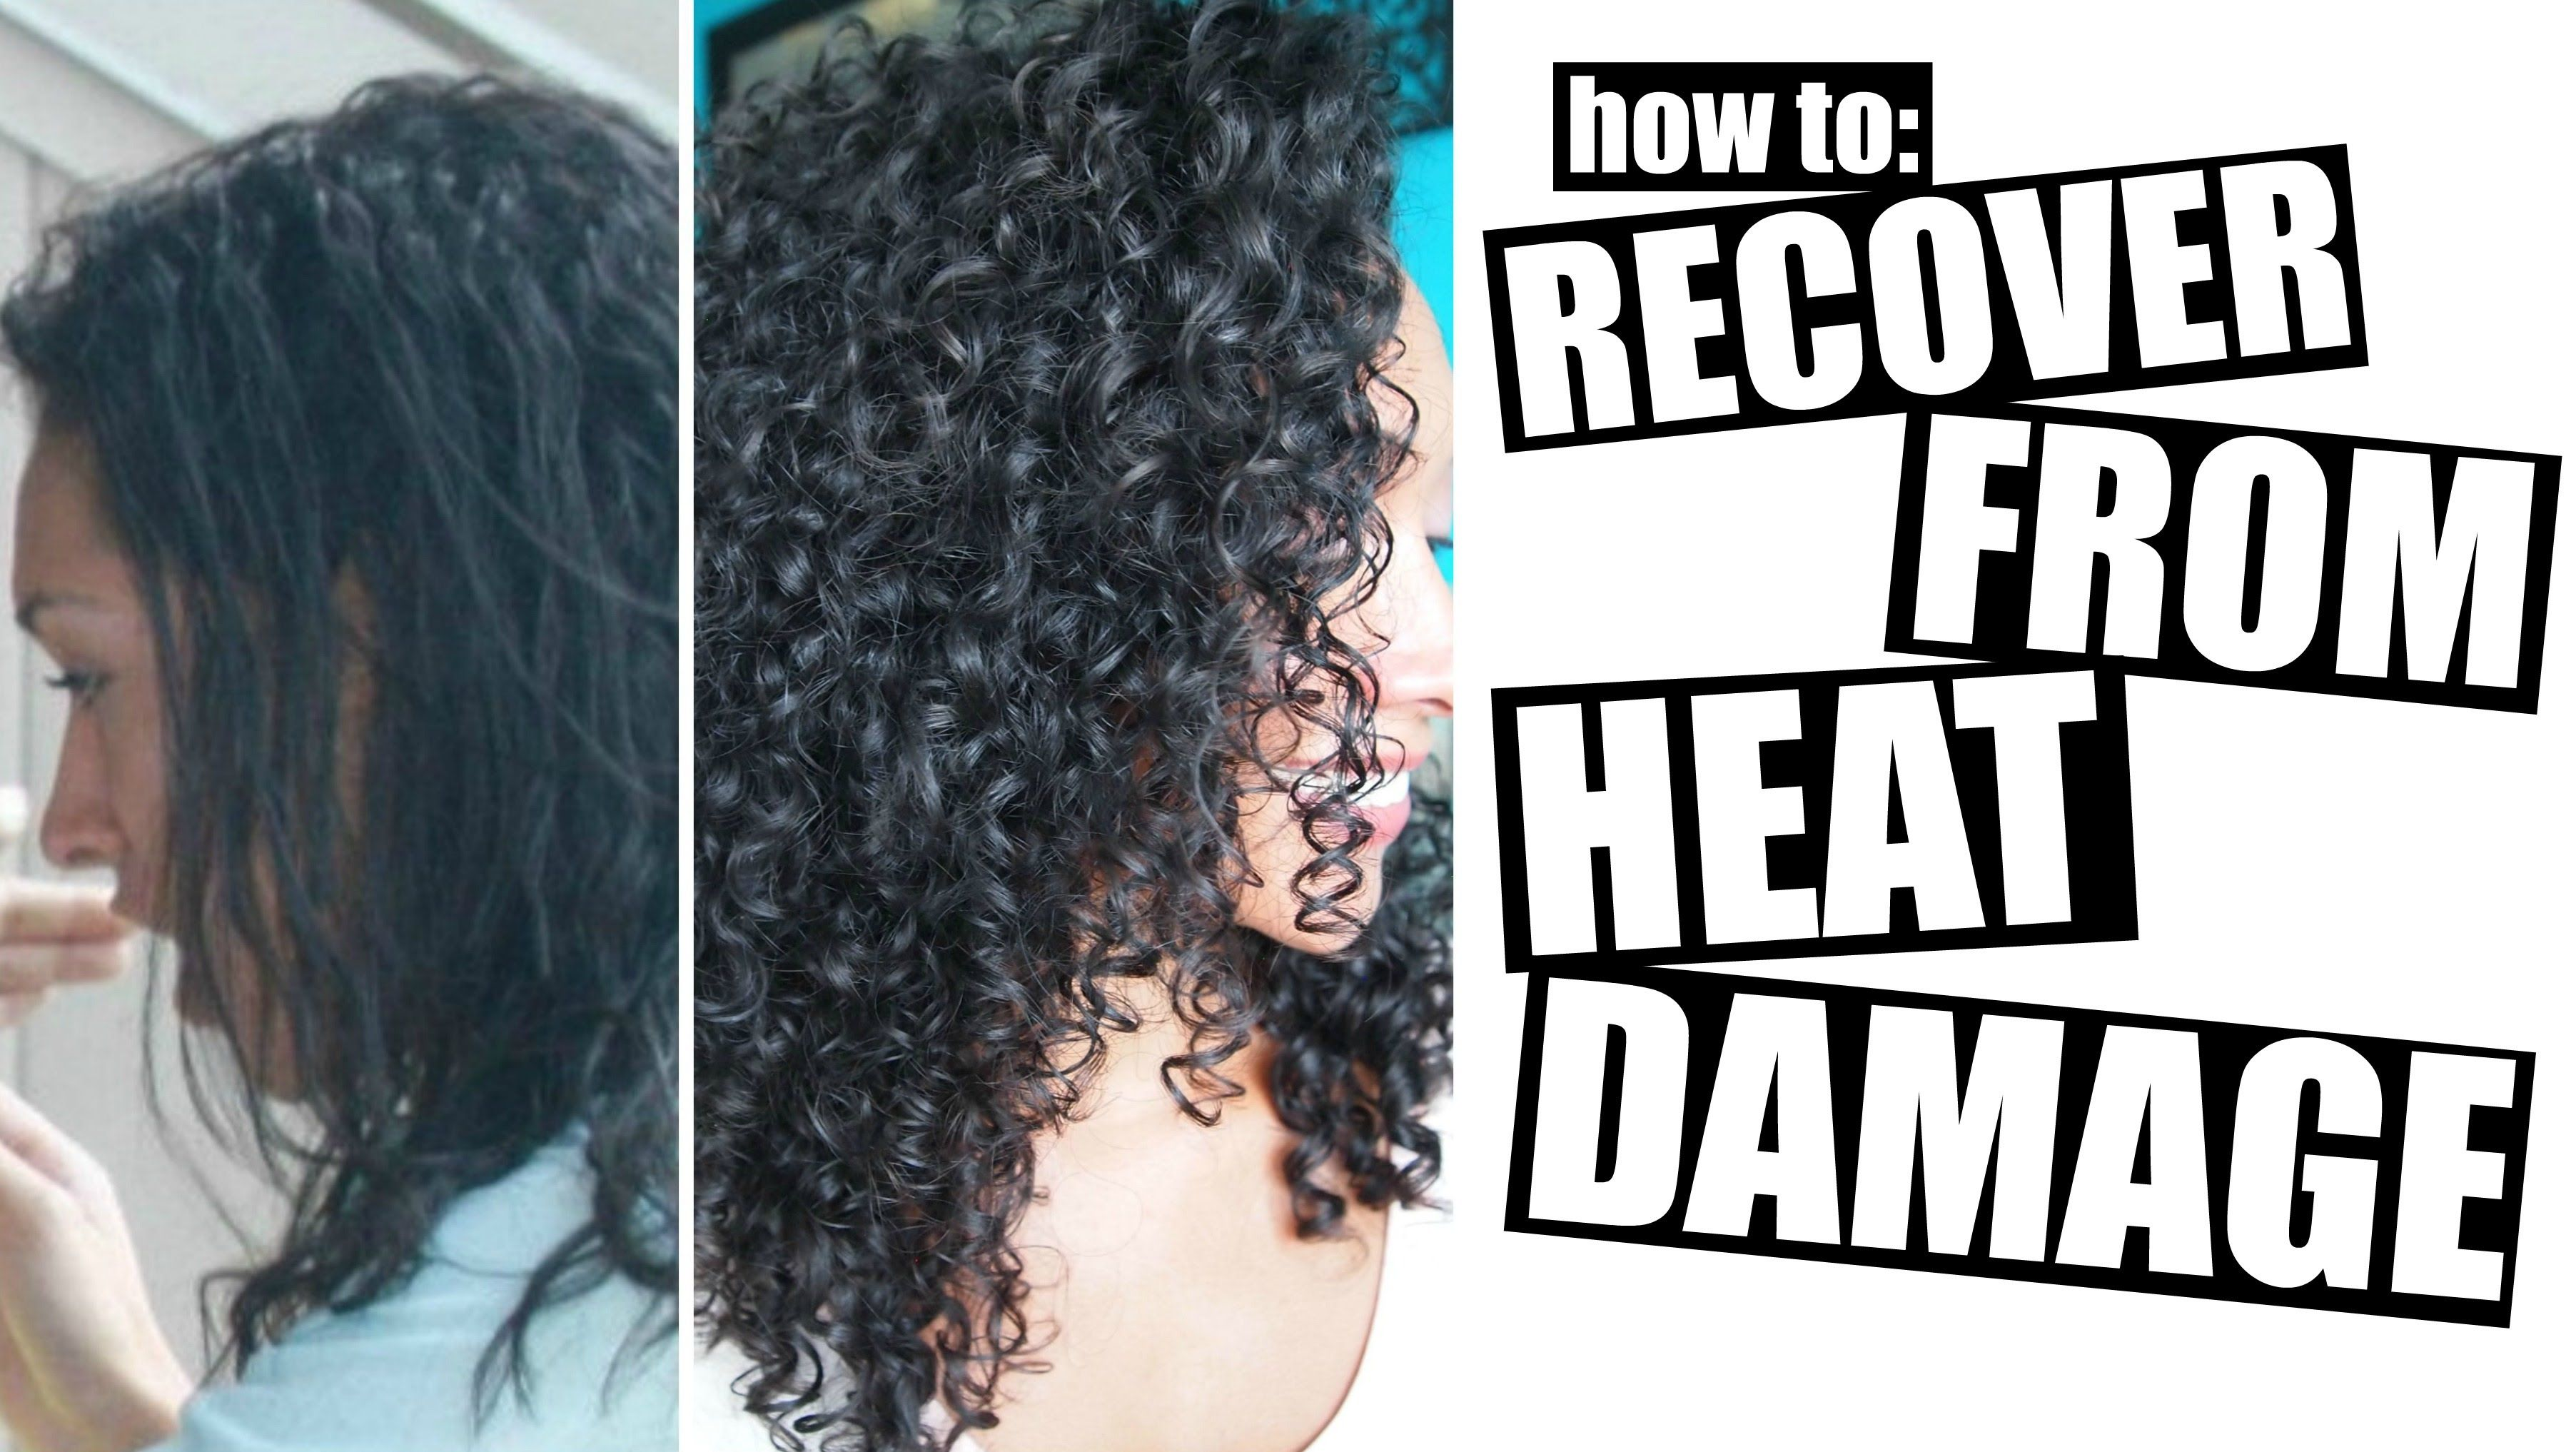 How To Style Your Curly Hair In 2020 Damaged Curly Hair Curly Hair Styles Naturally Hair Growth Challenge